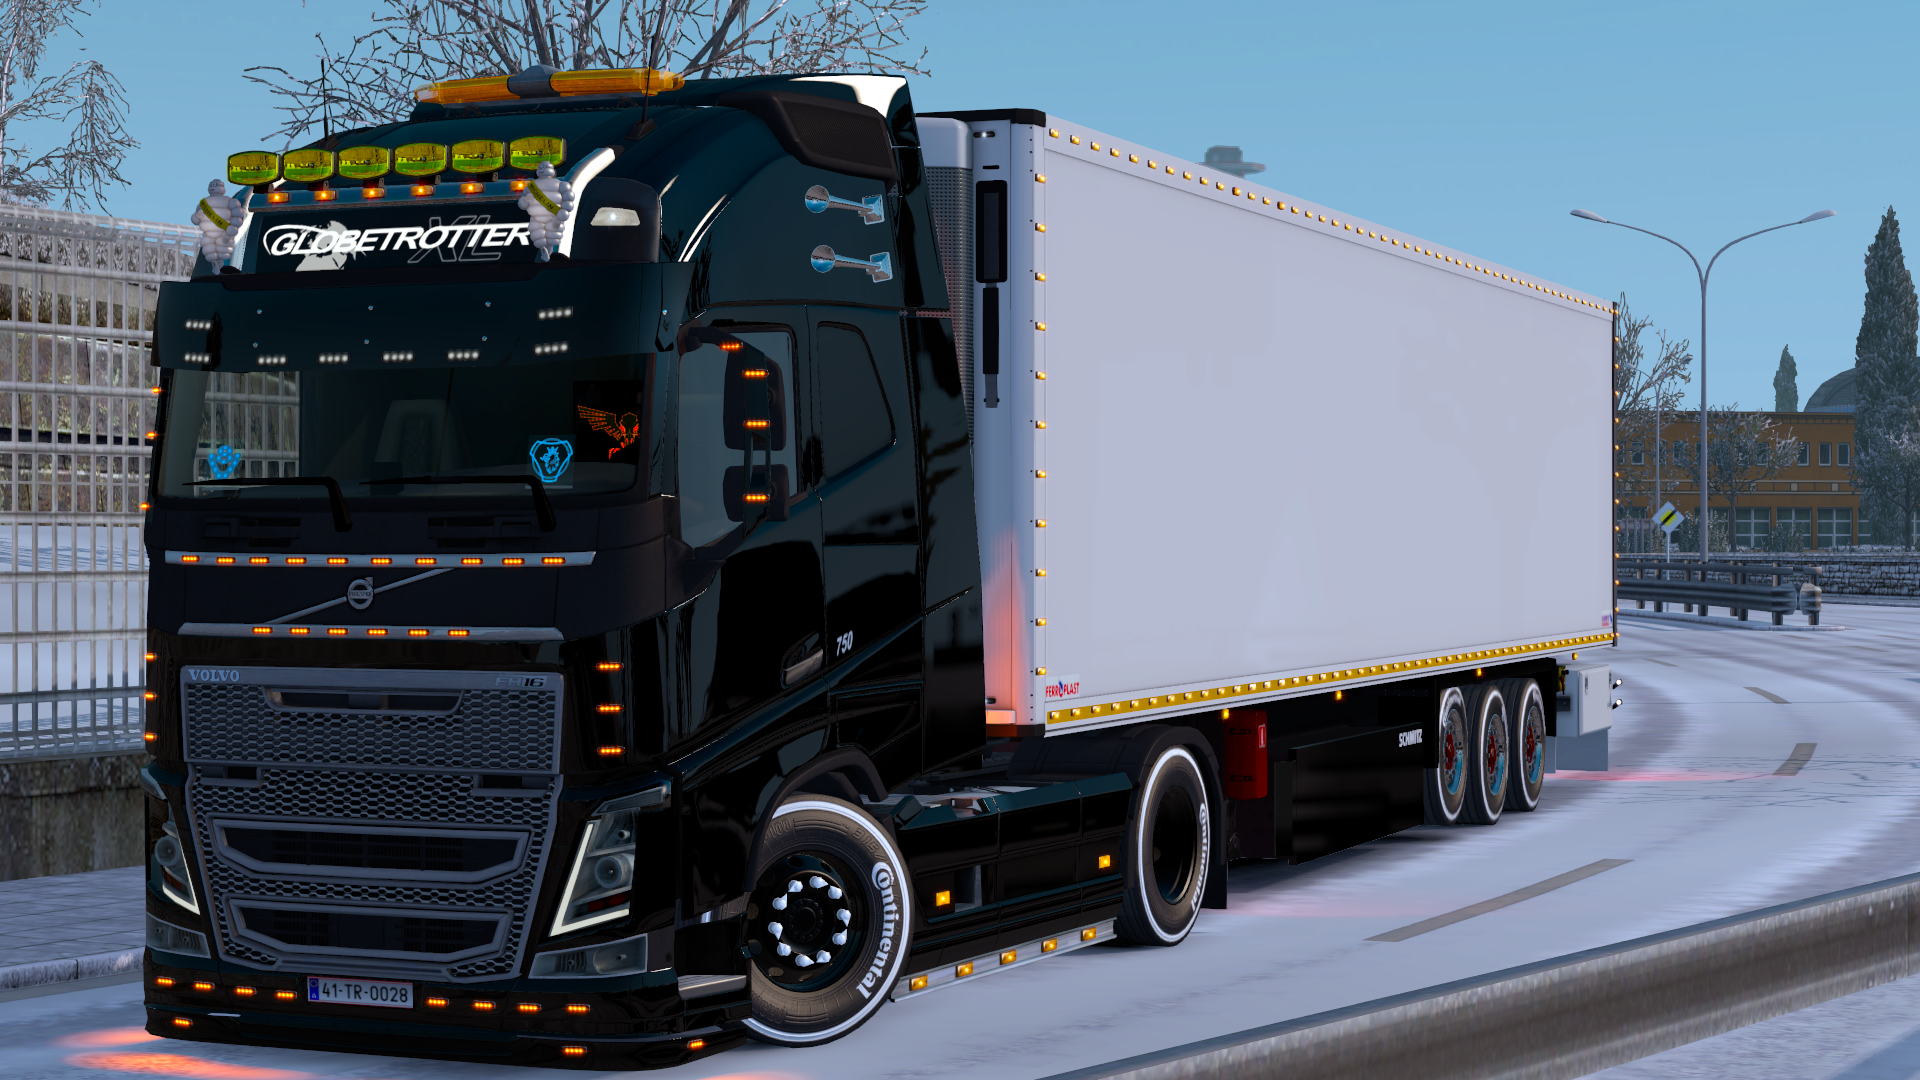 ets2_20190106_133209_00.png